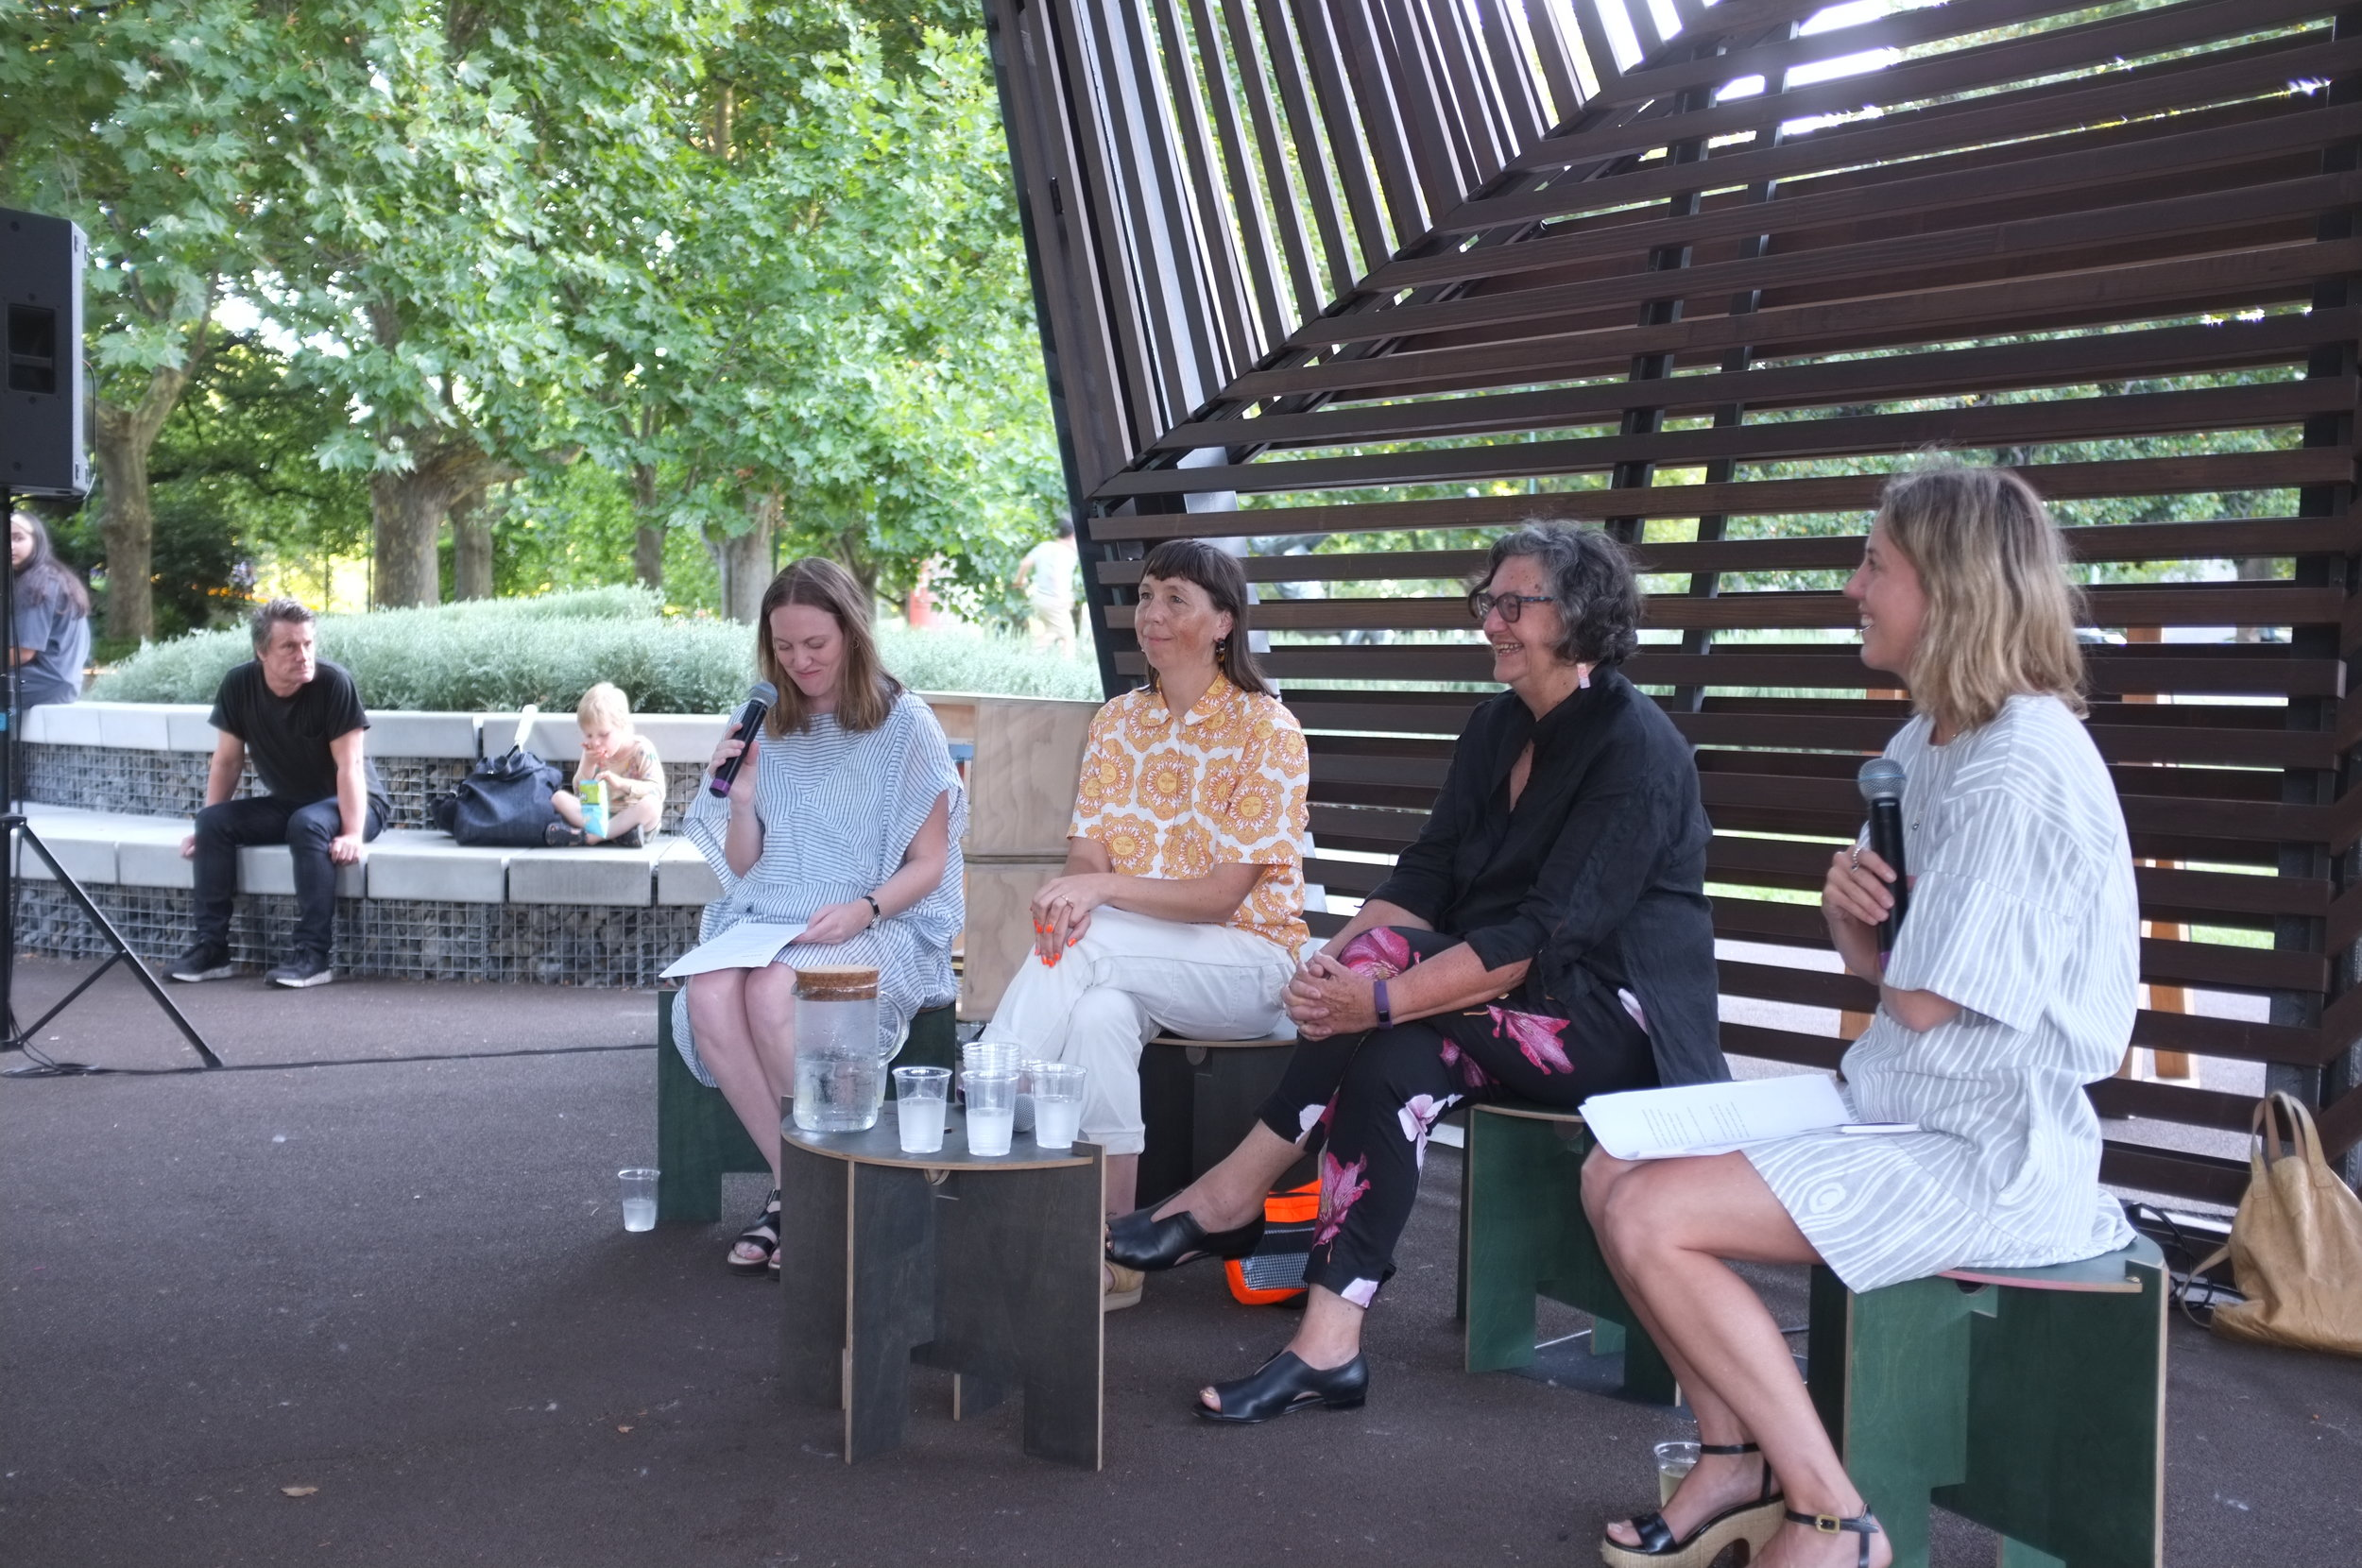 From L - R: Claire Feain, Beci Orpin, Marg D'Arcy and Ali Bird.